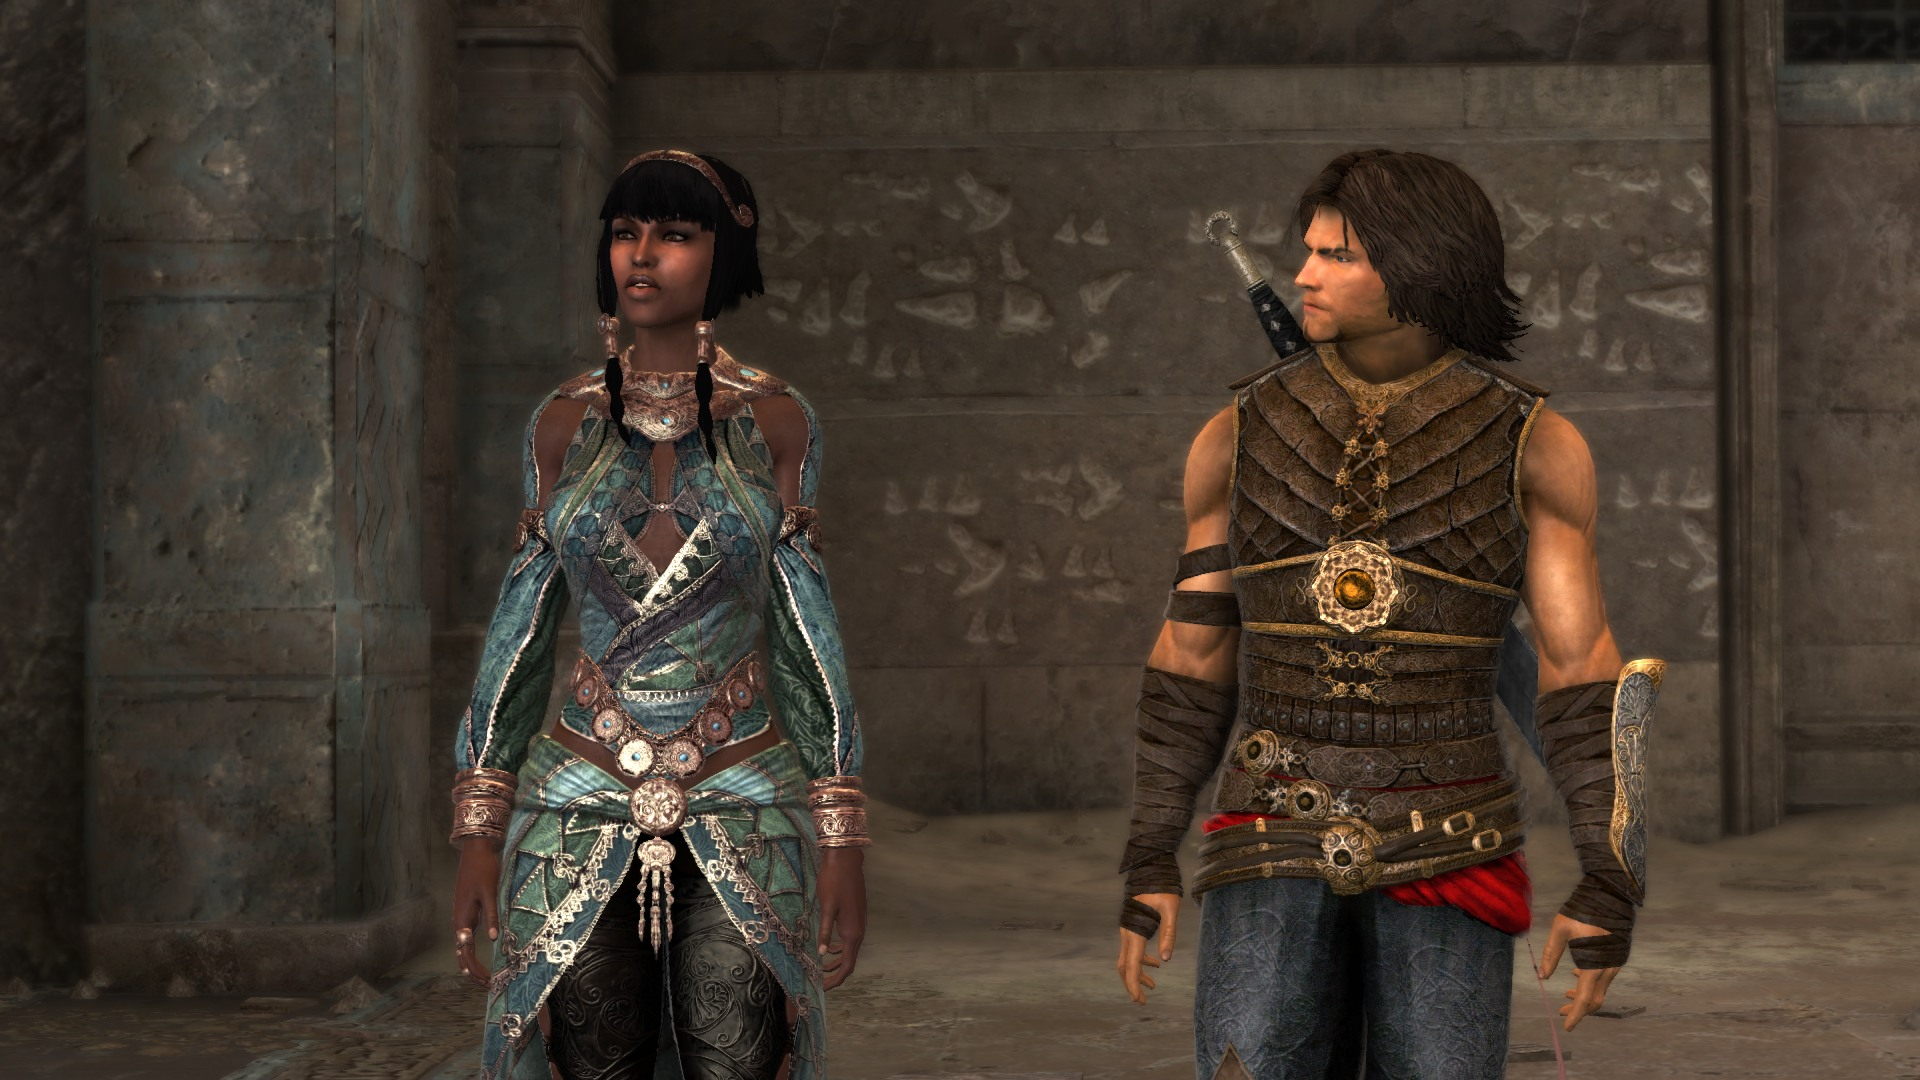 Prince of Persia The Forgotten Sands [Warranty 5 years] 2019